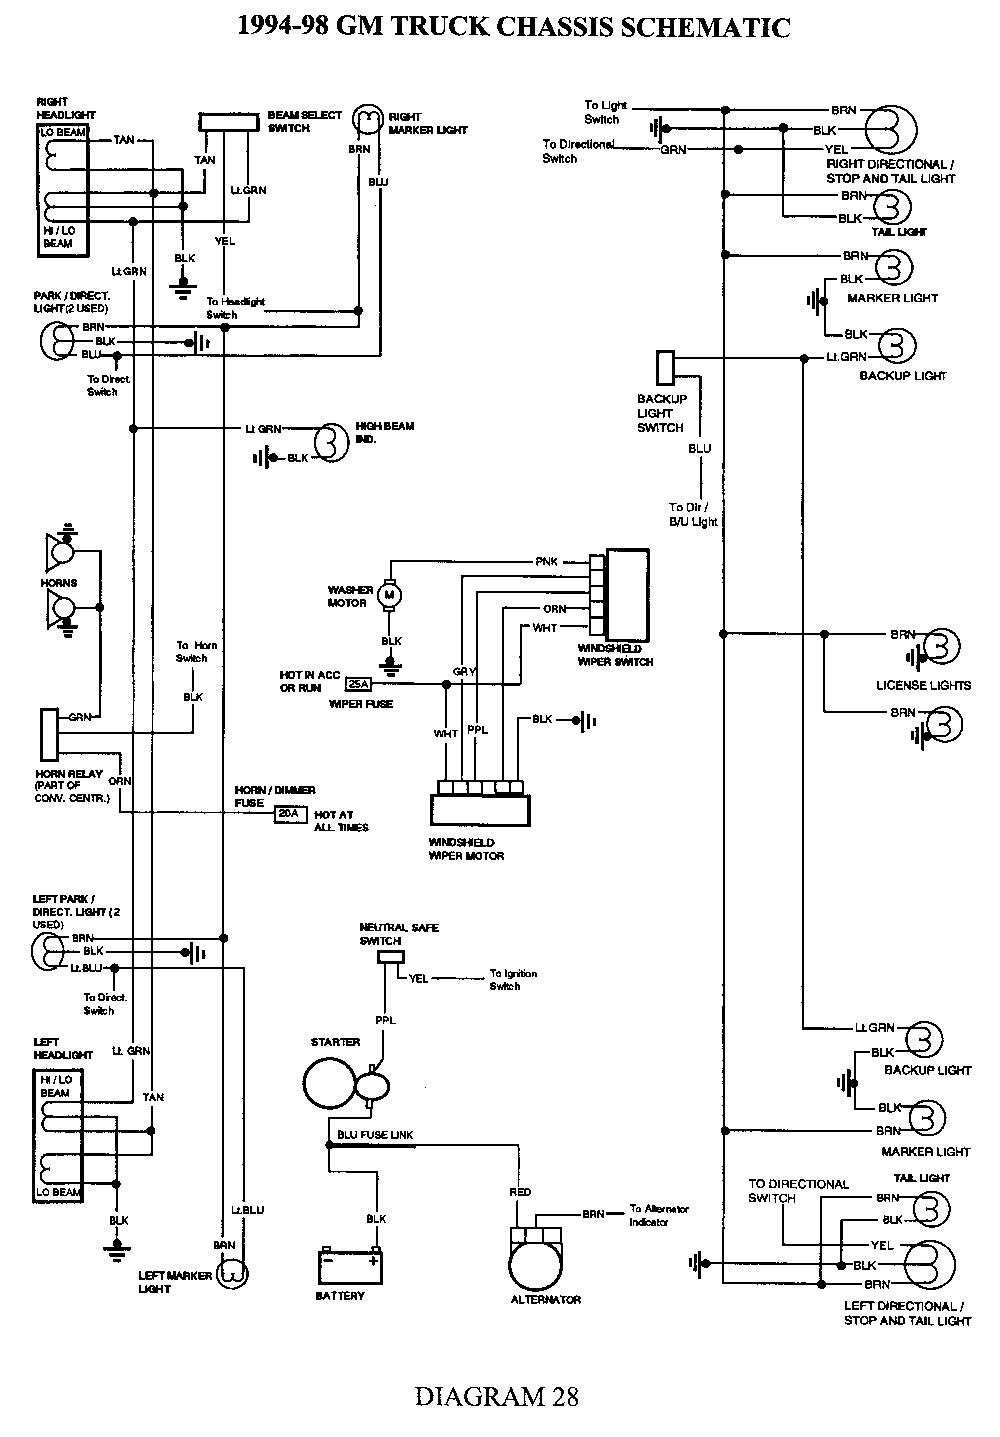 33 wiring diagram for electric brake controller - bookingritzcarlton.info | trailer  wiring diagram, electrical diagram, 2004 chevy silverado  pinterest